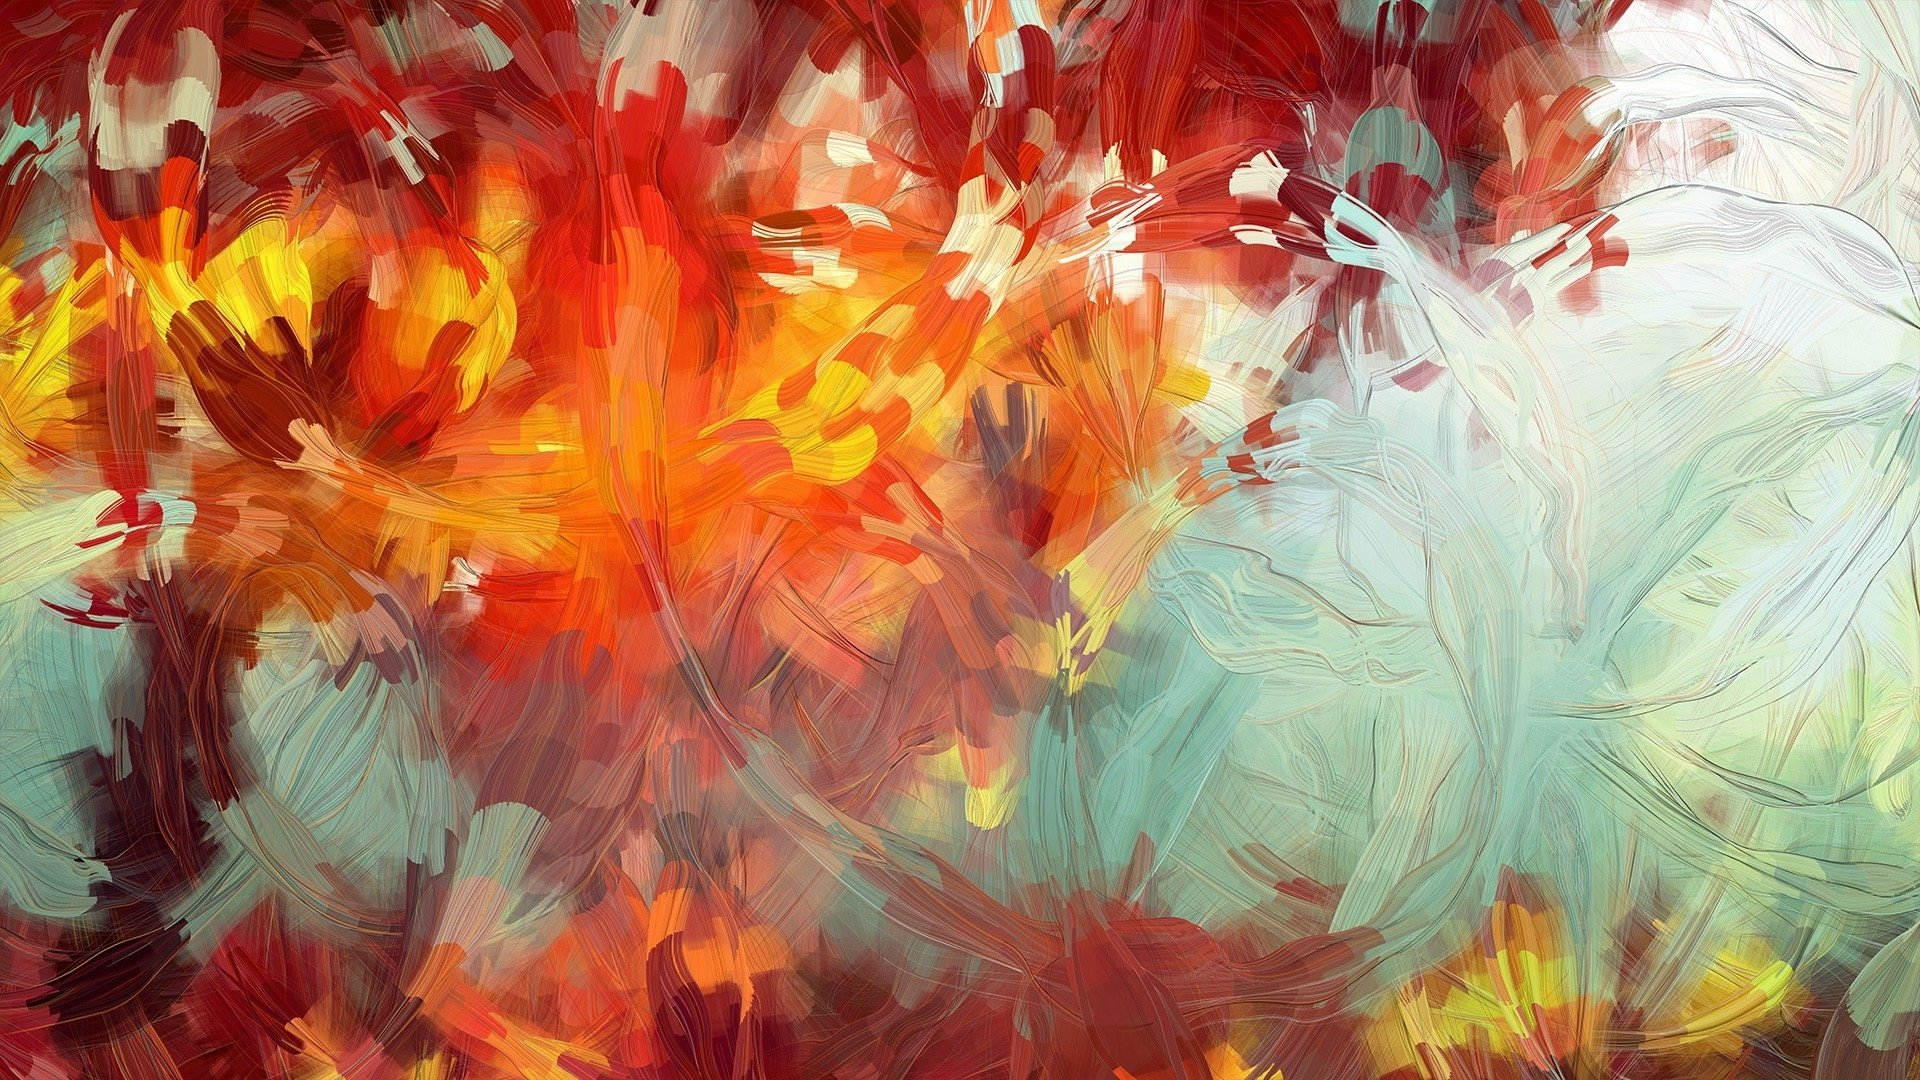 Abstract colorful illustrations artwork bright generative